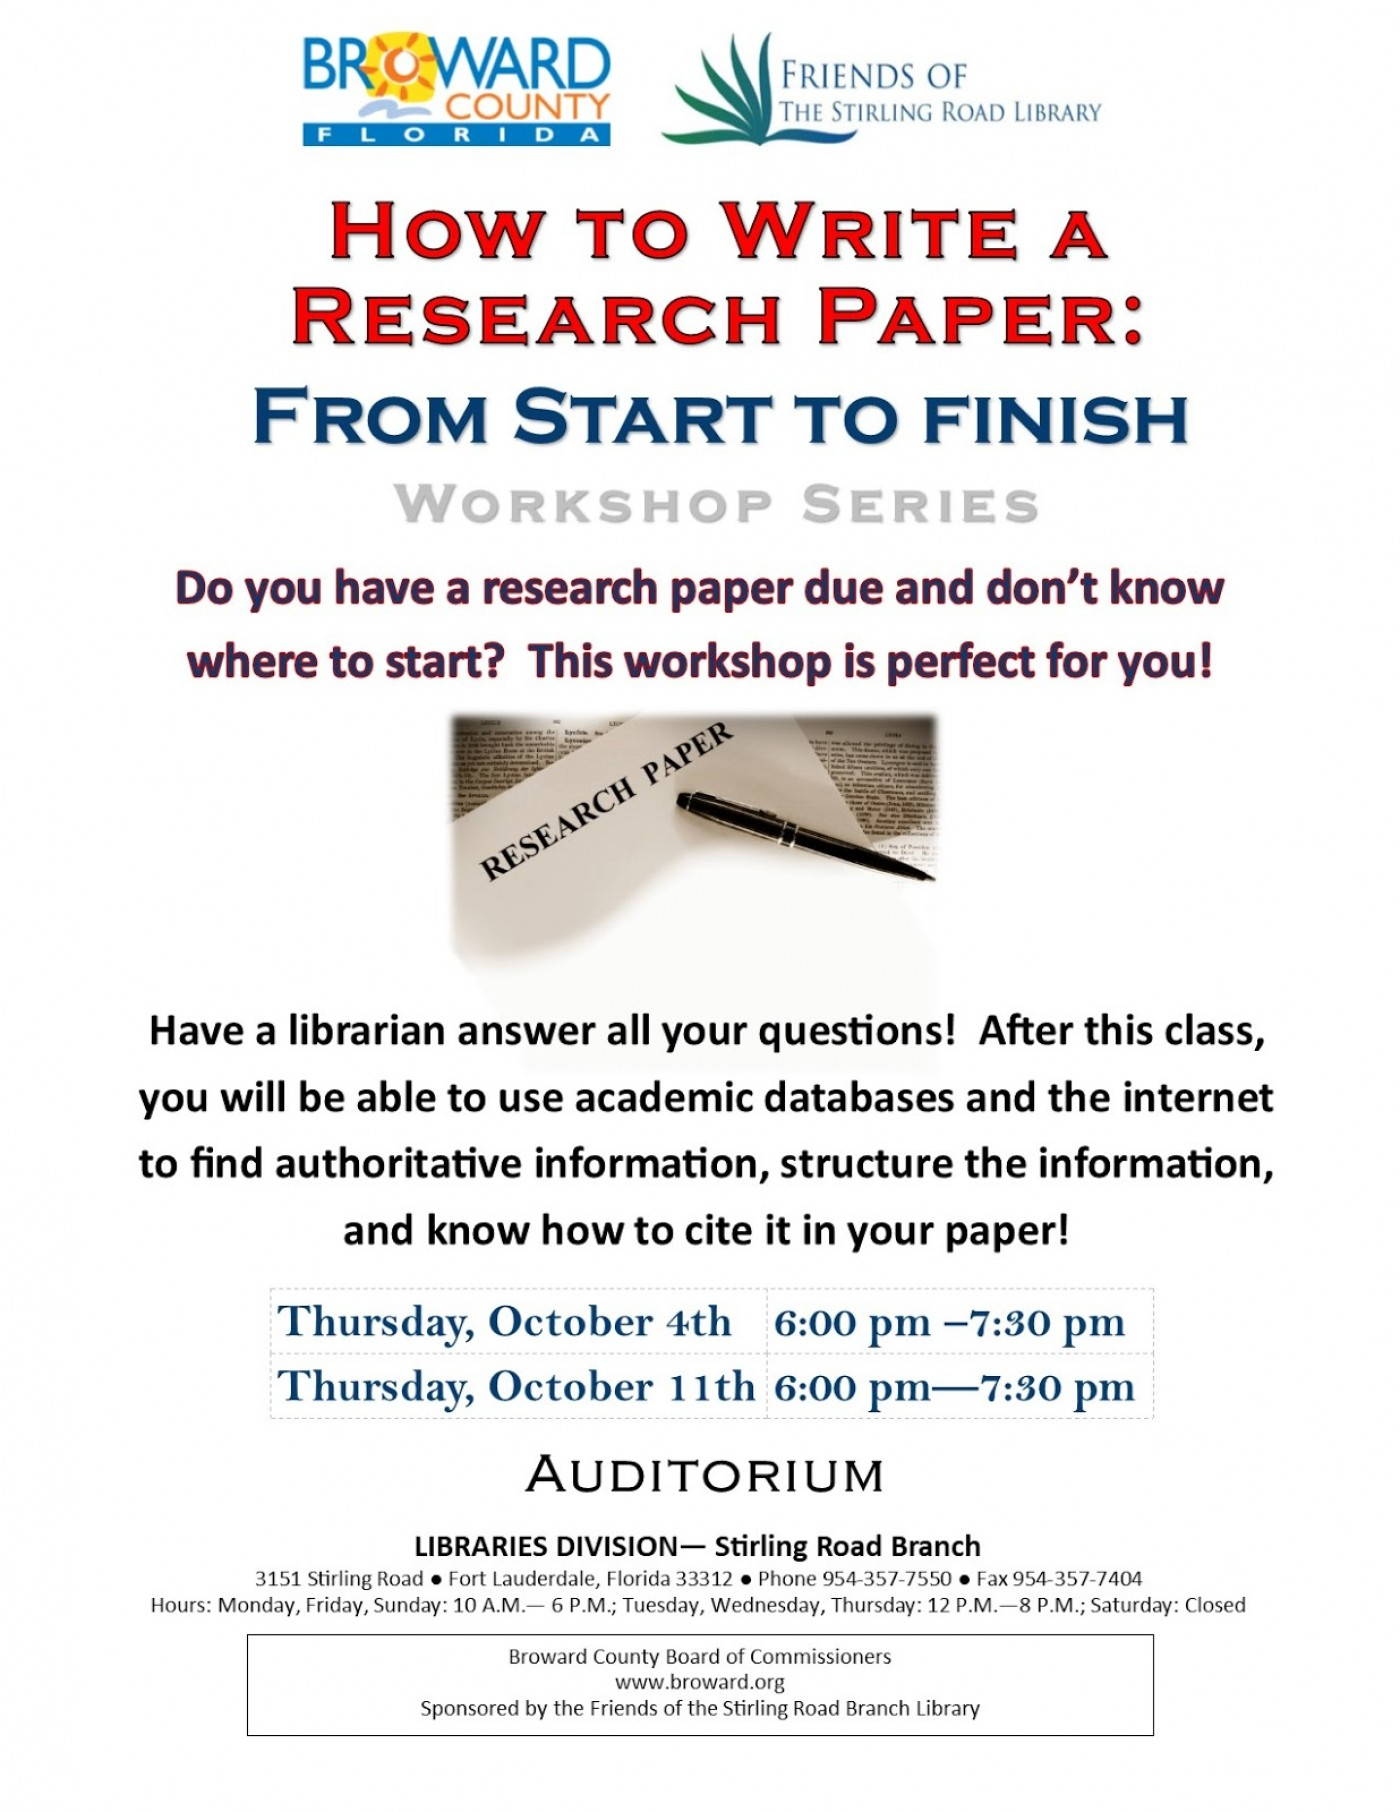 027 Research Paper Writing The Phenomenal Papers A Complete Guide 15th Edition Pdf Abstract Ppt Biomedical 1400